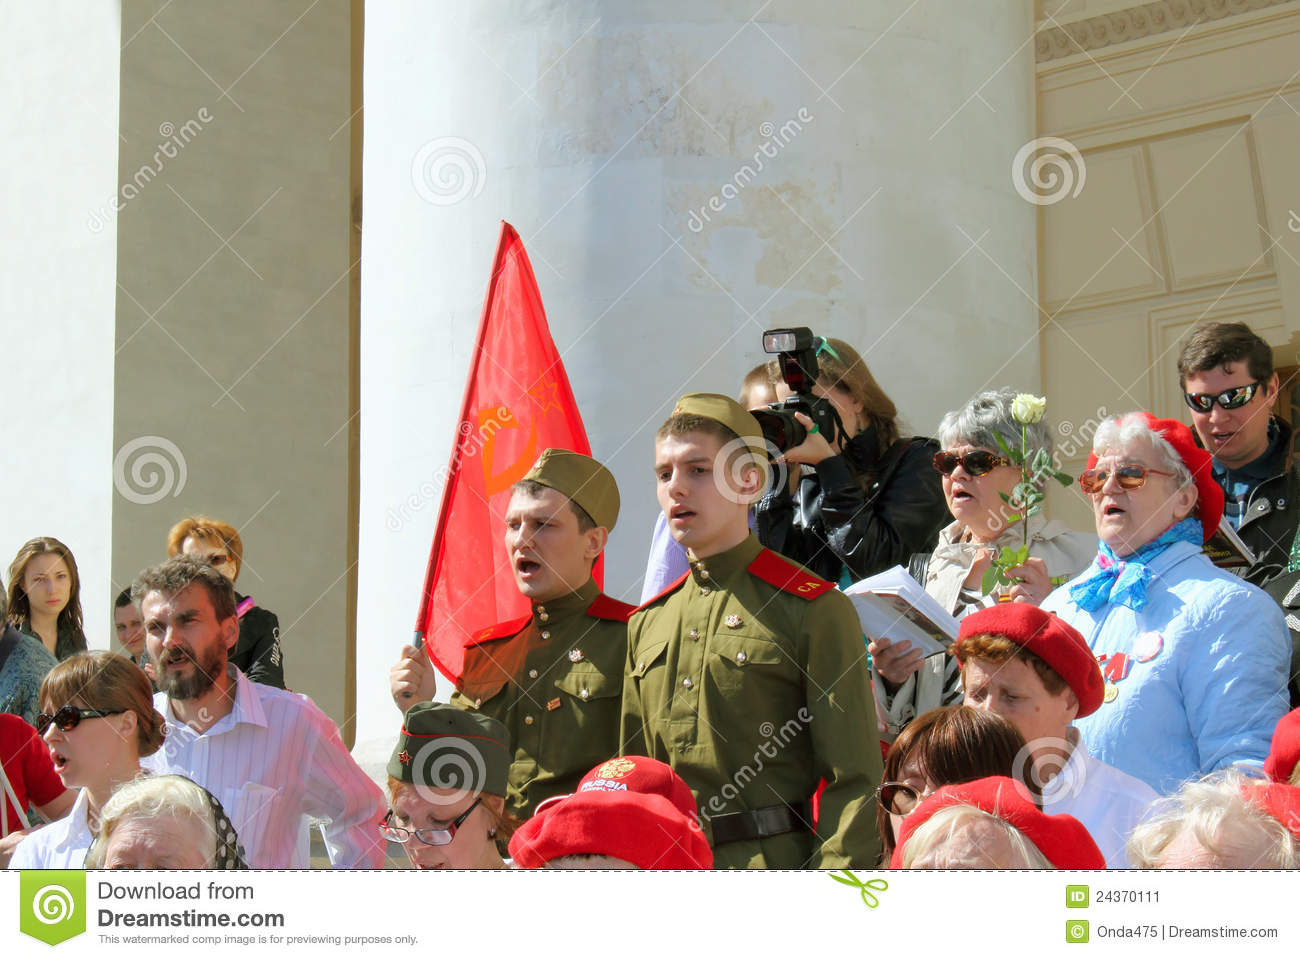 Moscow may 09 the celebration of victory day in moscow